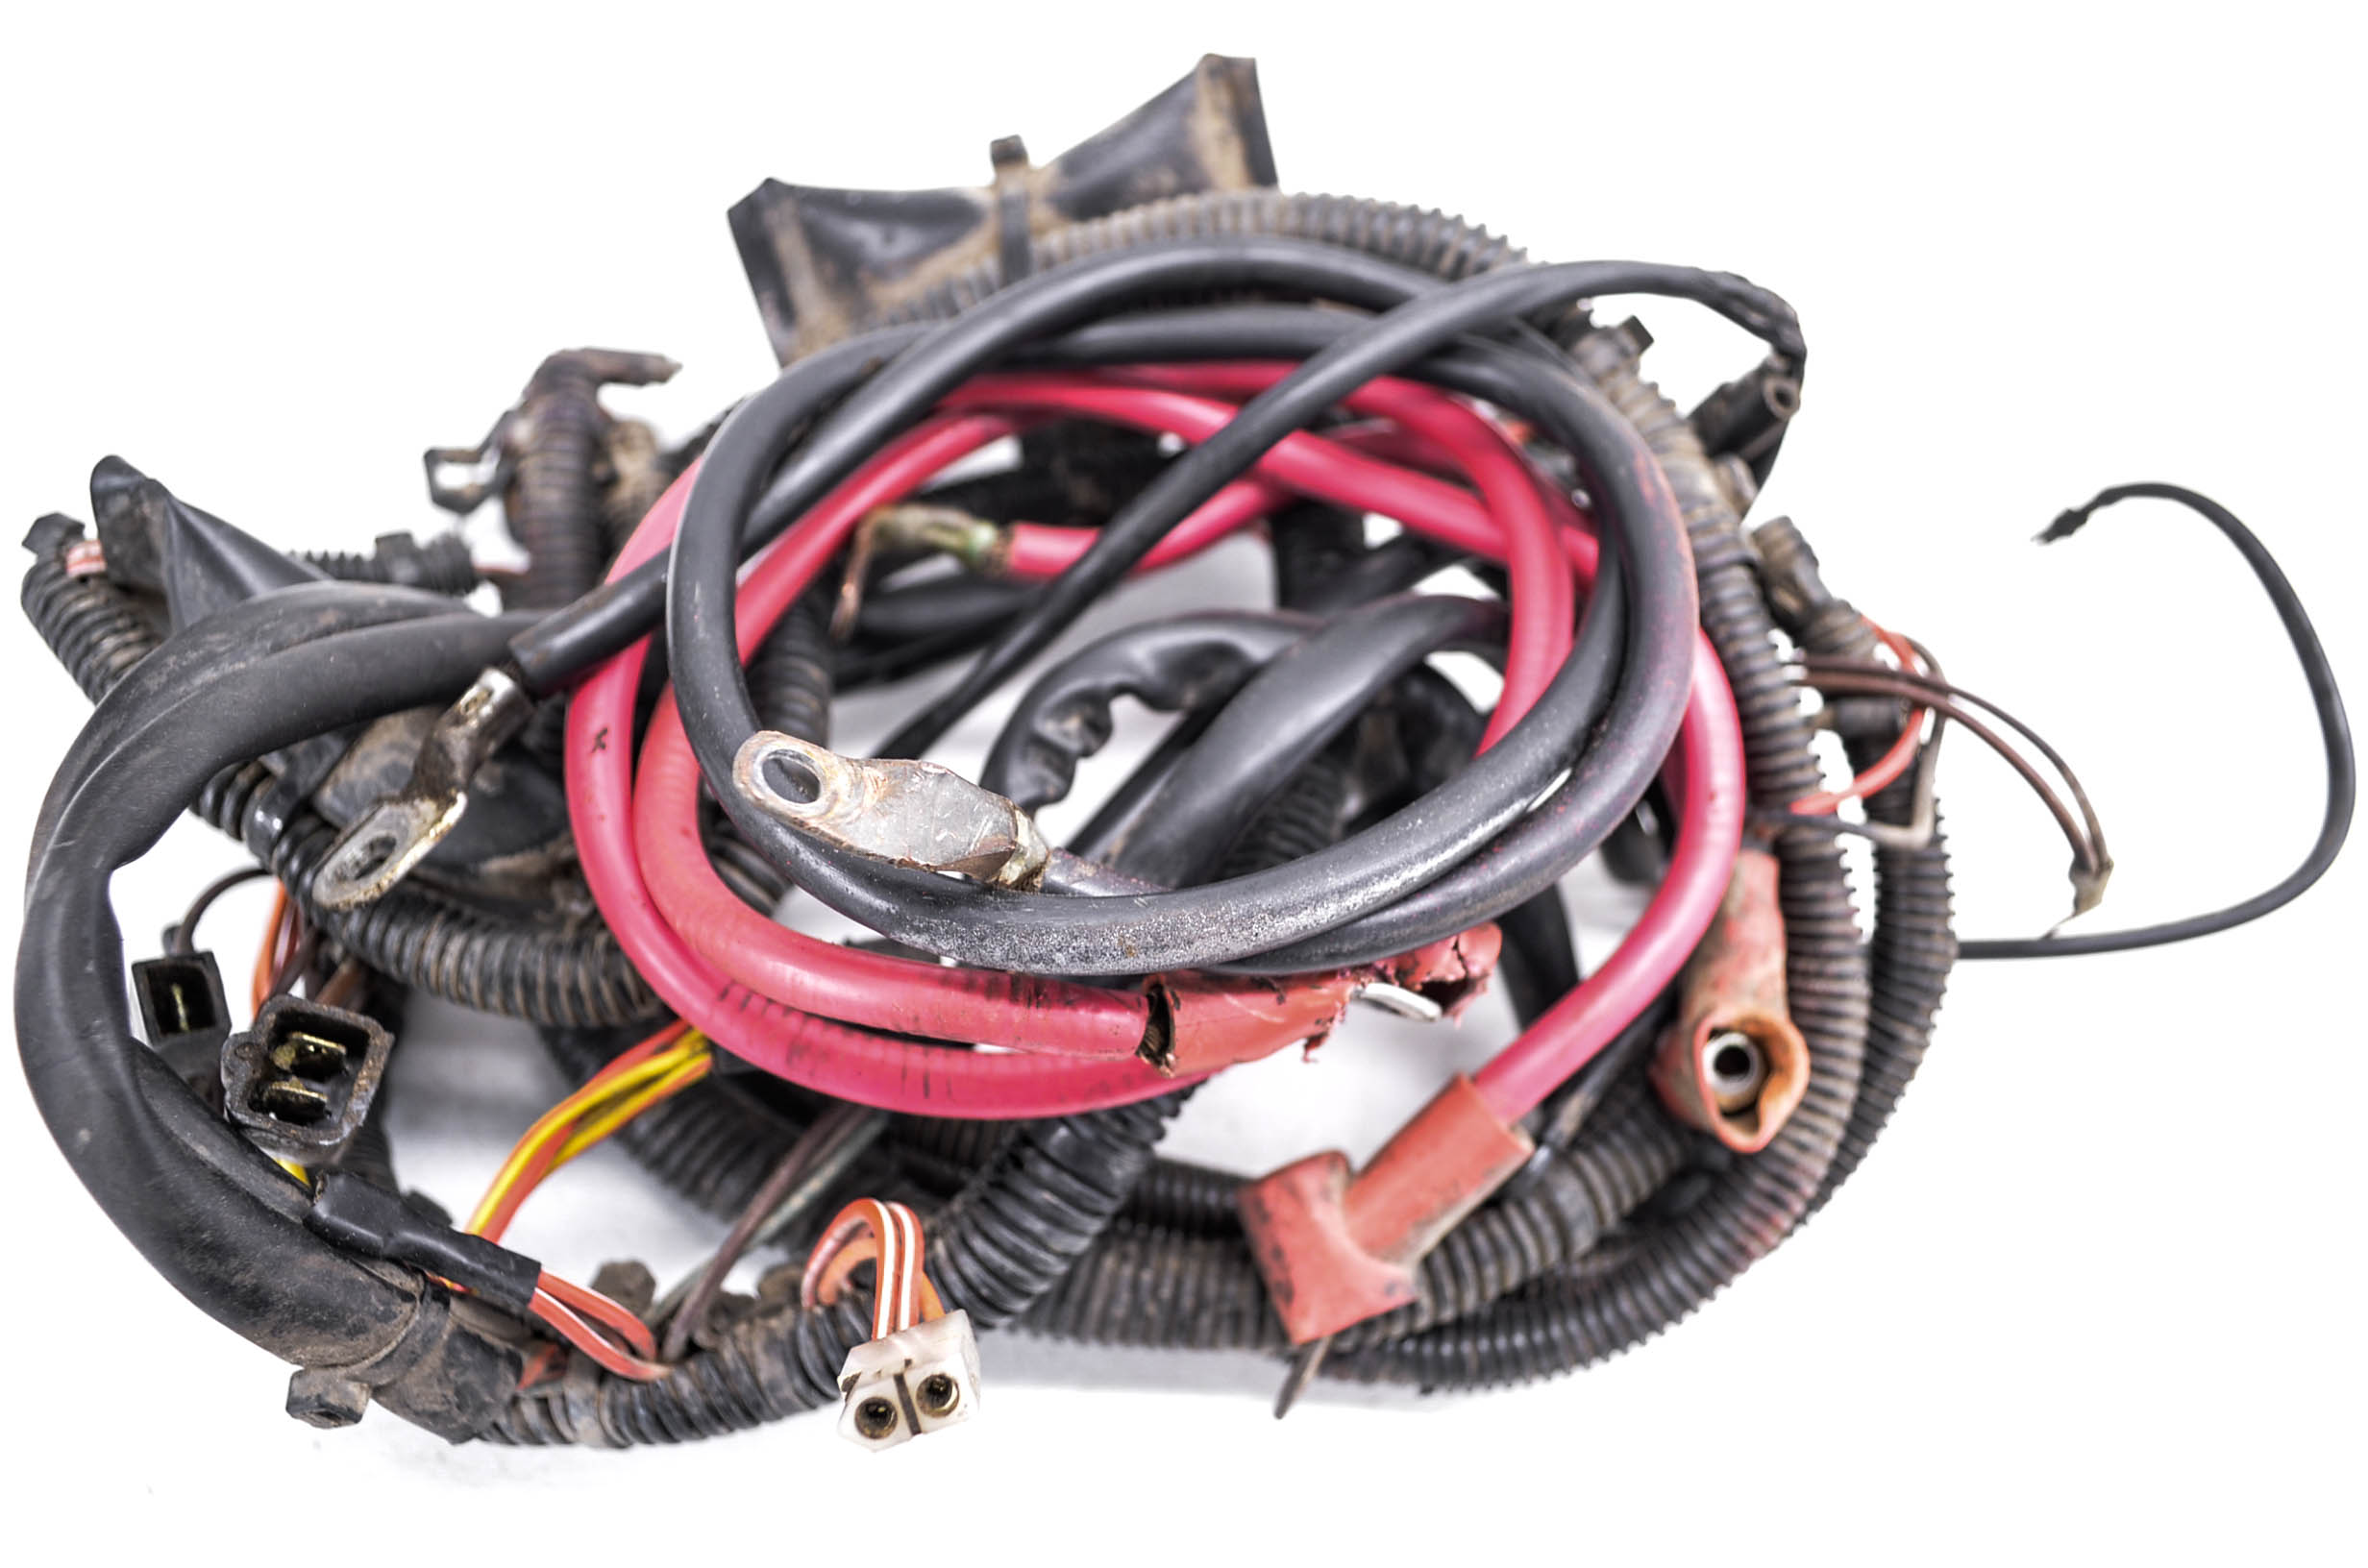 2003 Polaris Trailblazer Wiring Harness | Wiring Diagram 2019 on 1999 polaris xpedition 425, 1999 polaris 250 2x4, 1999 polaris scrambler 400 4x4, 1999 polaris magnum, 1999 polaris xplorer 400 4x4,